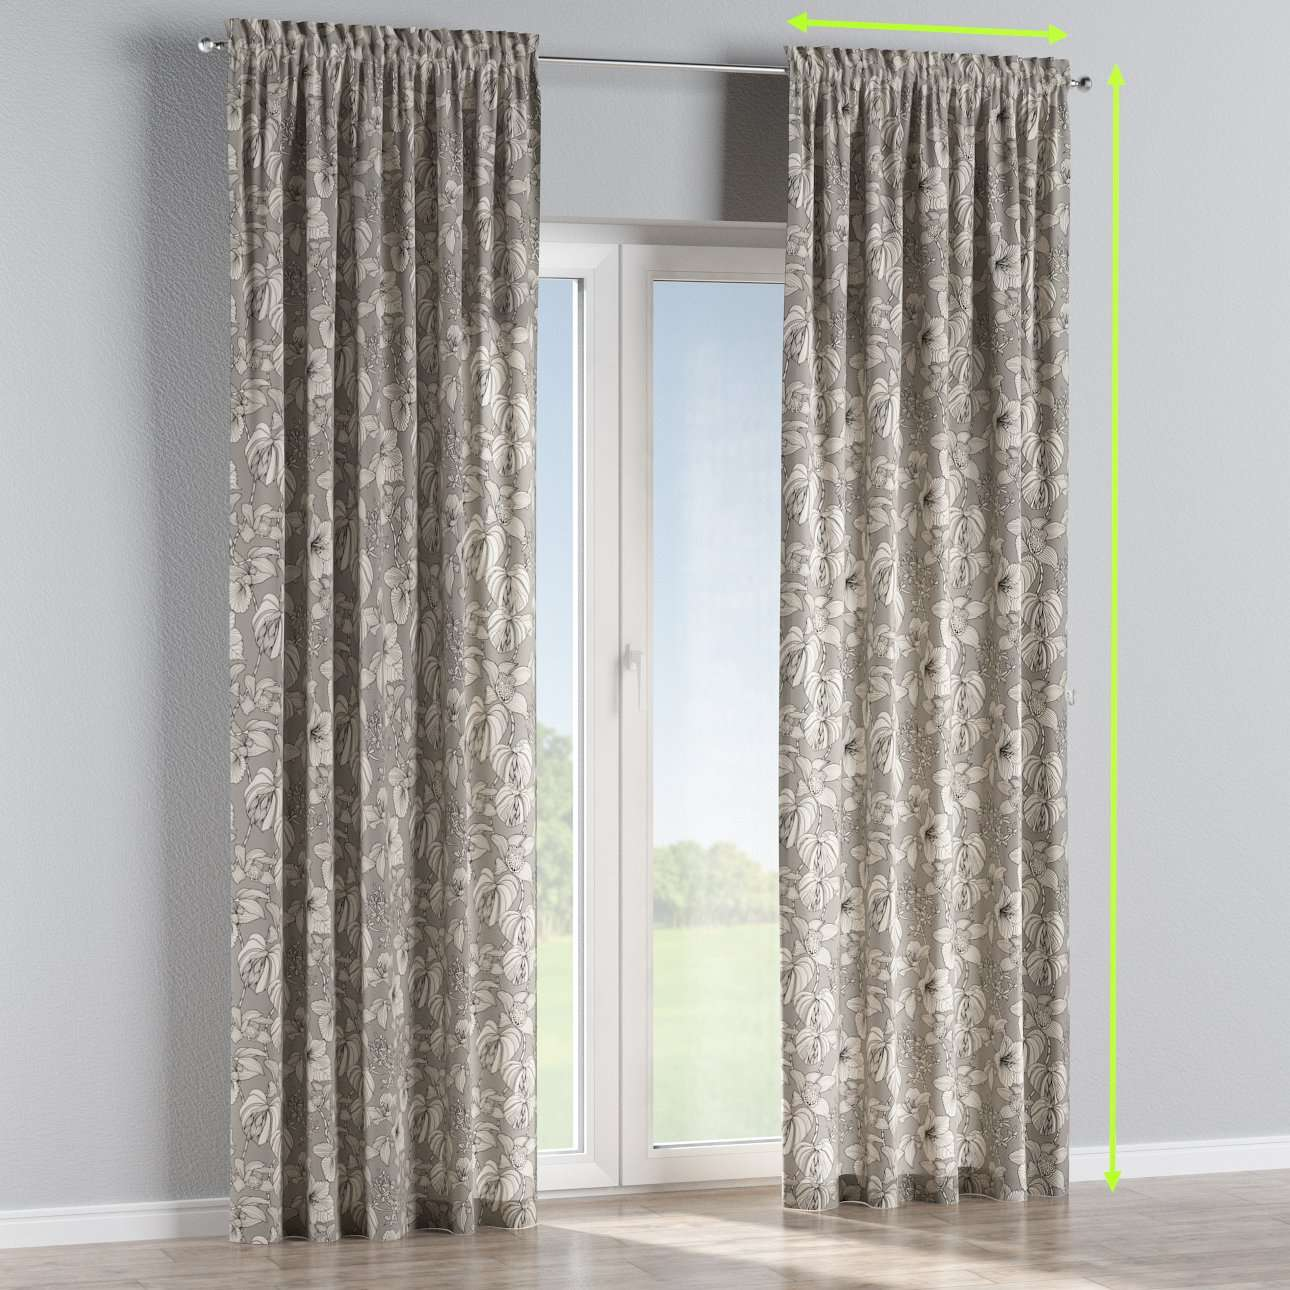 Slot and frill curtains in collection Brooklyn, fabric: 137-80